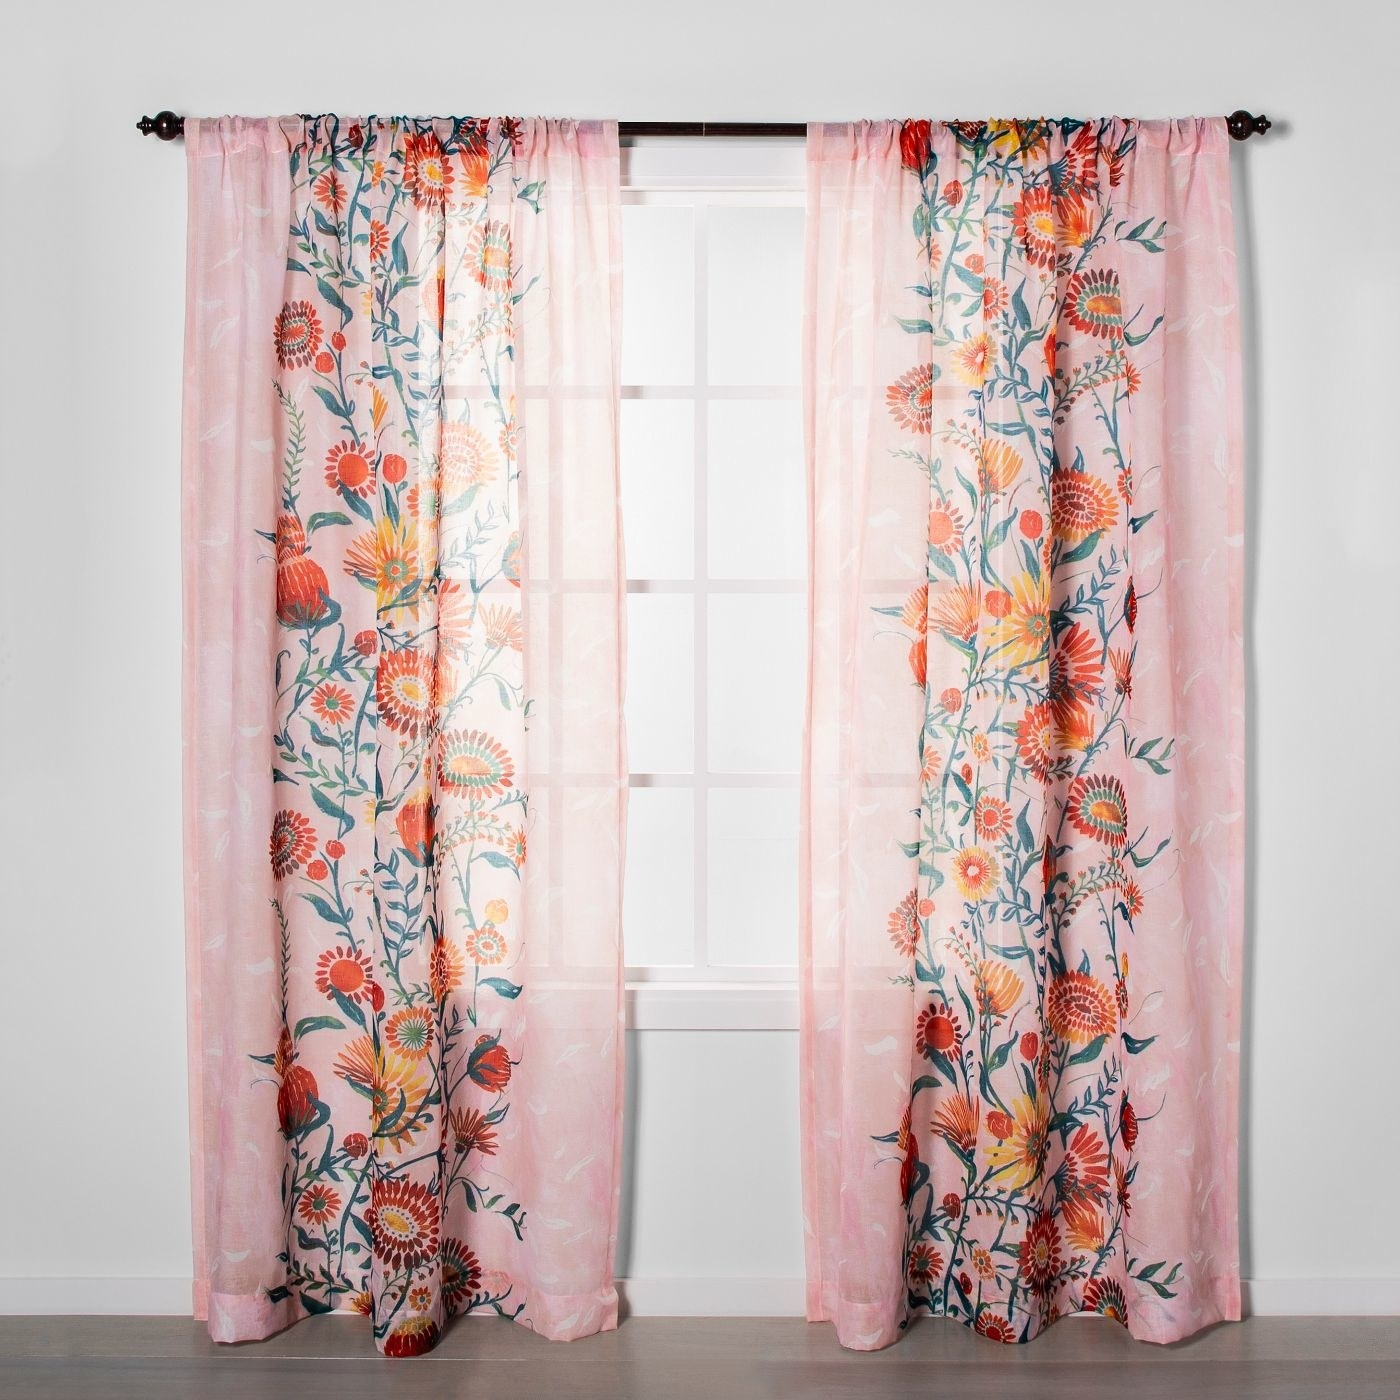 Sheer curtains in pink with multi-color floral pattern down the middle